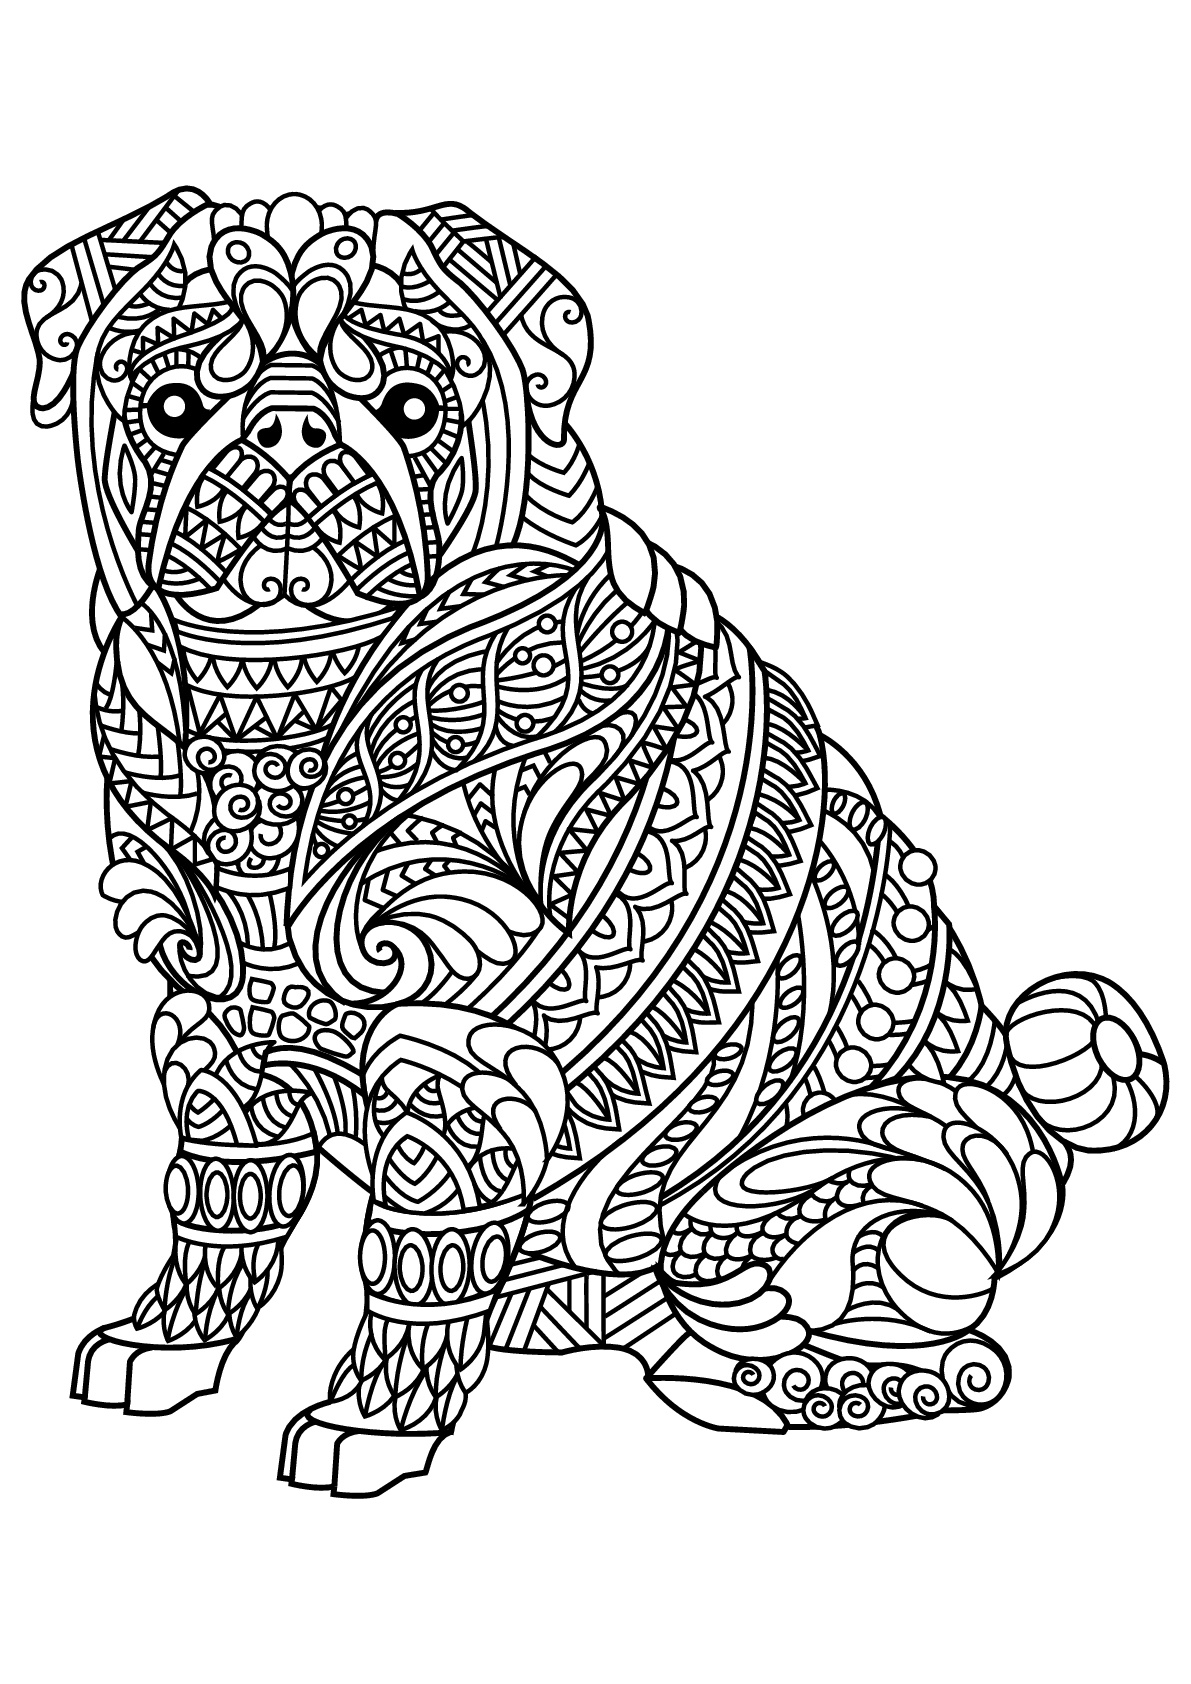 Dogs coloring pages 89